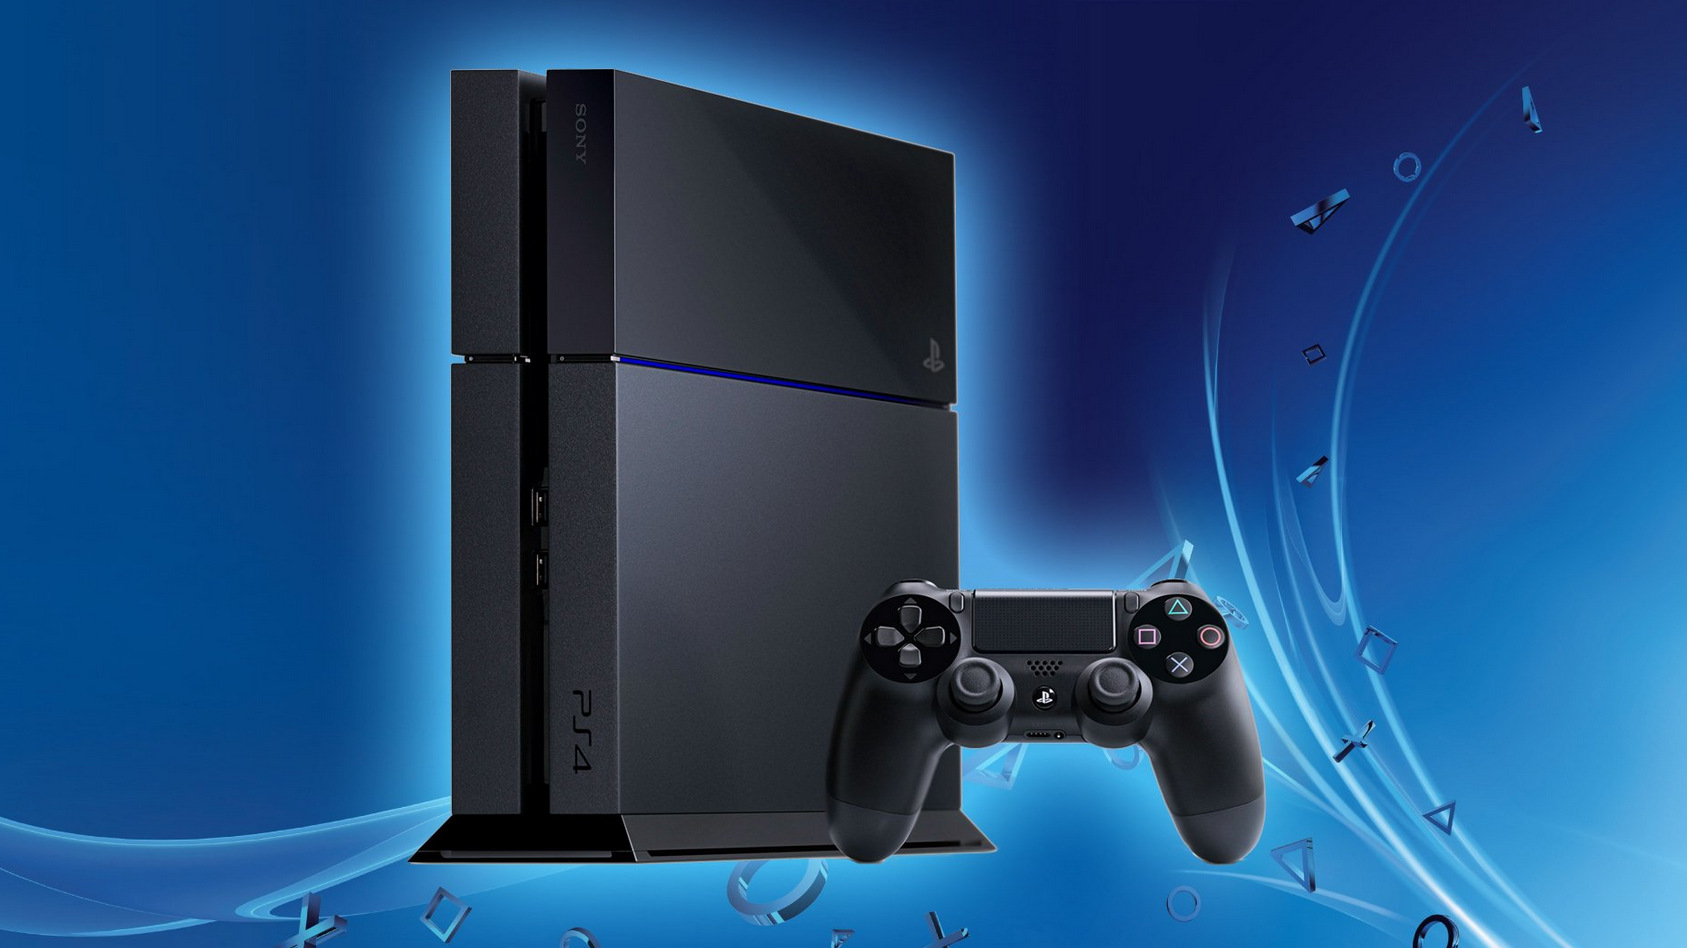 PlayStation 4 pirata, pirateria copia juegos gratis (1)